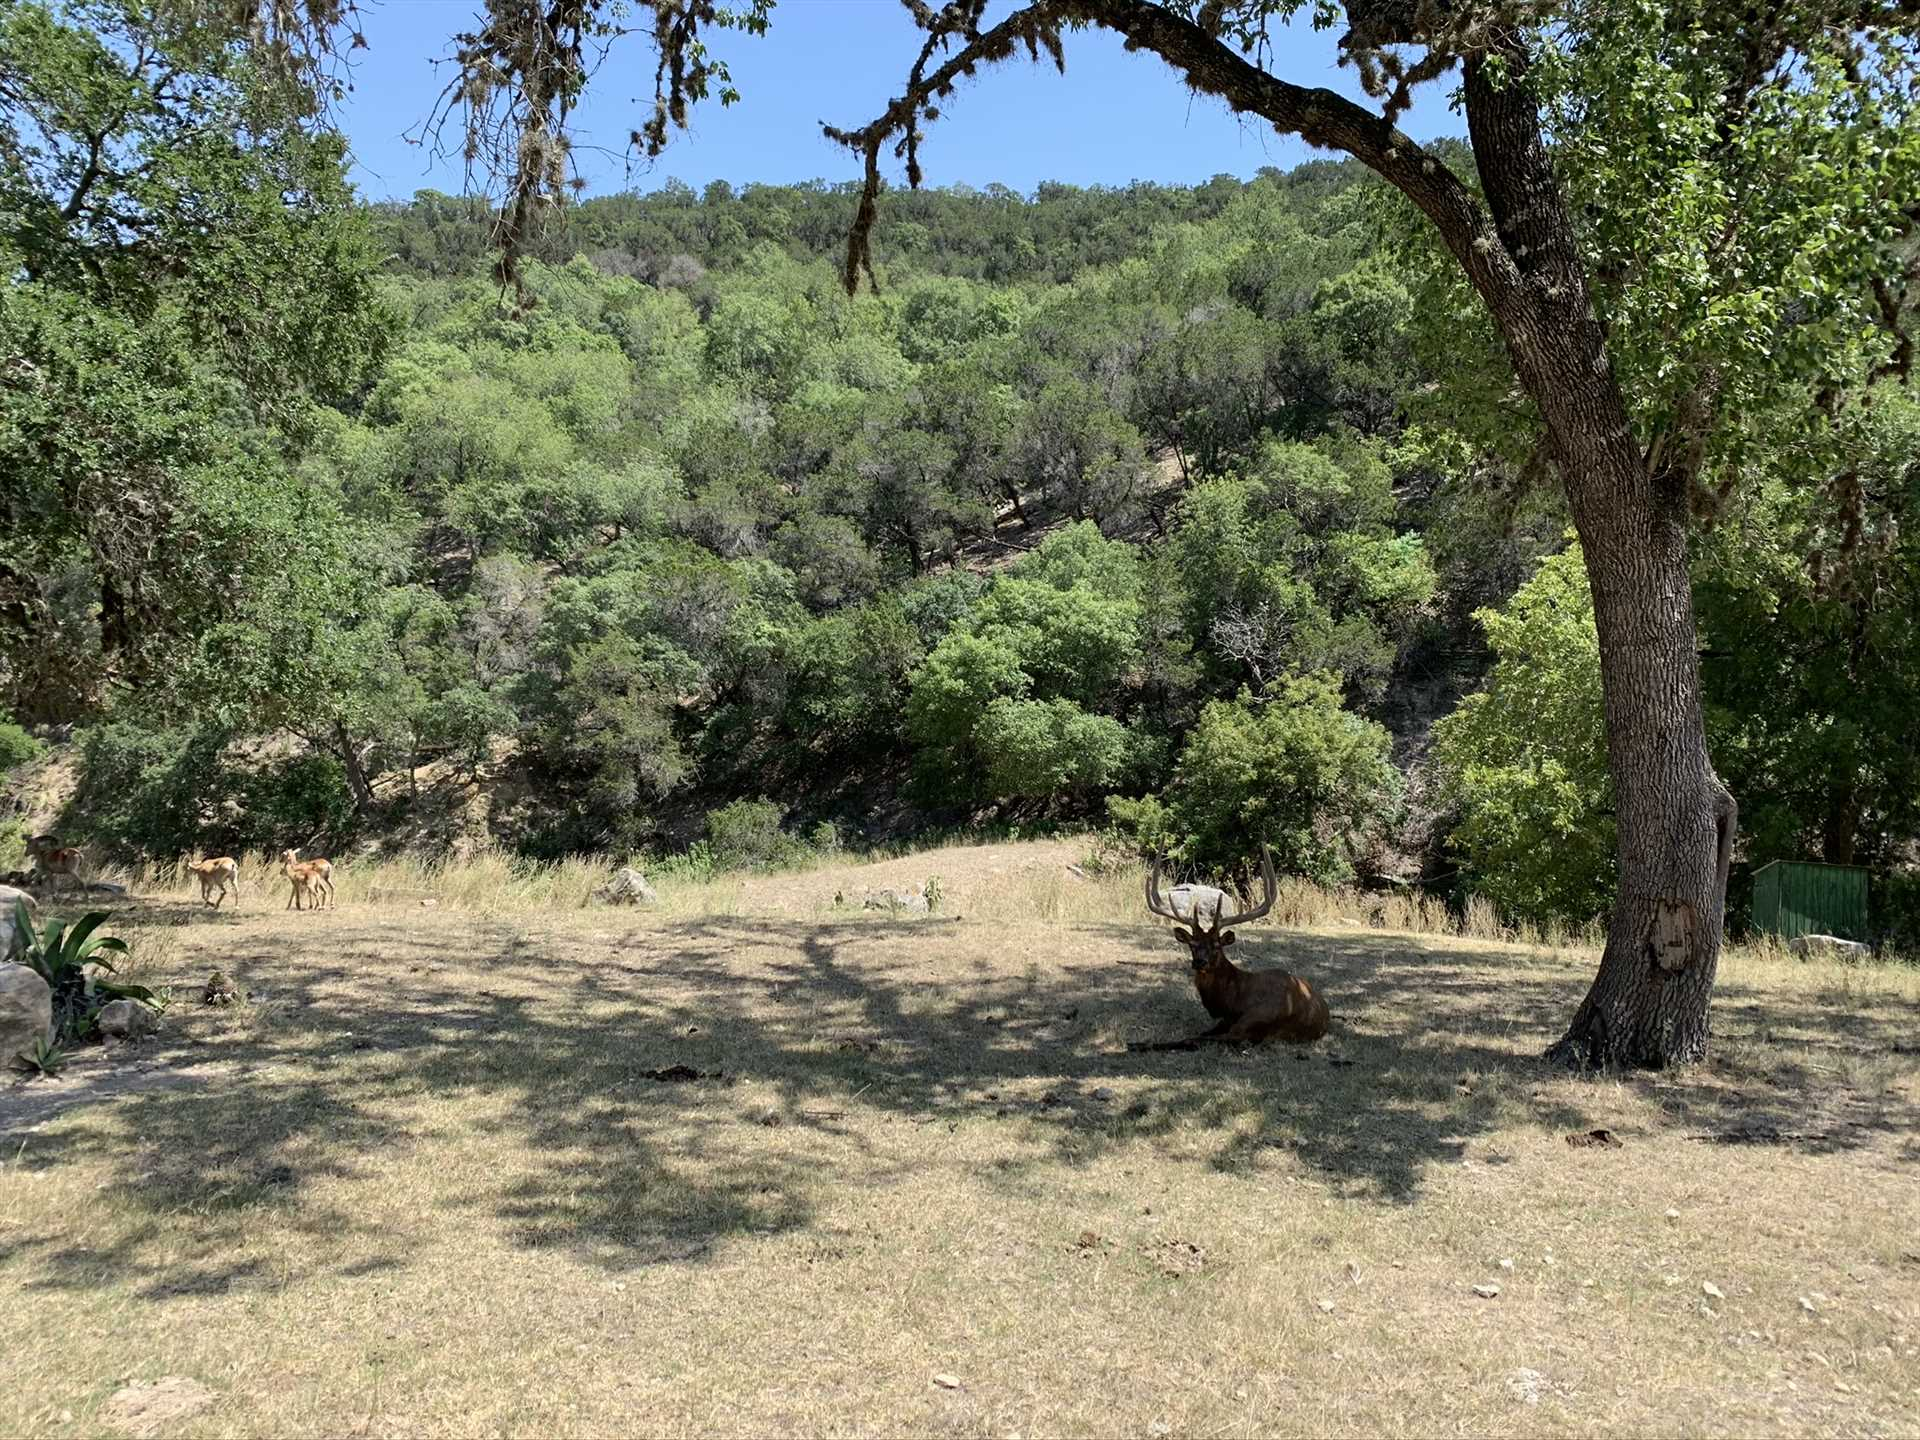 If you think the views on the ground are stunning (and they certainly are), check out the ranch's elevated observation deck!